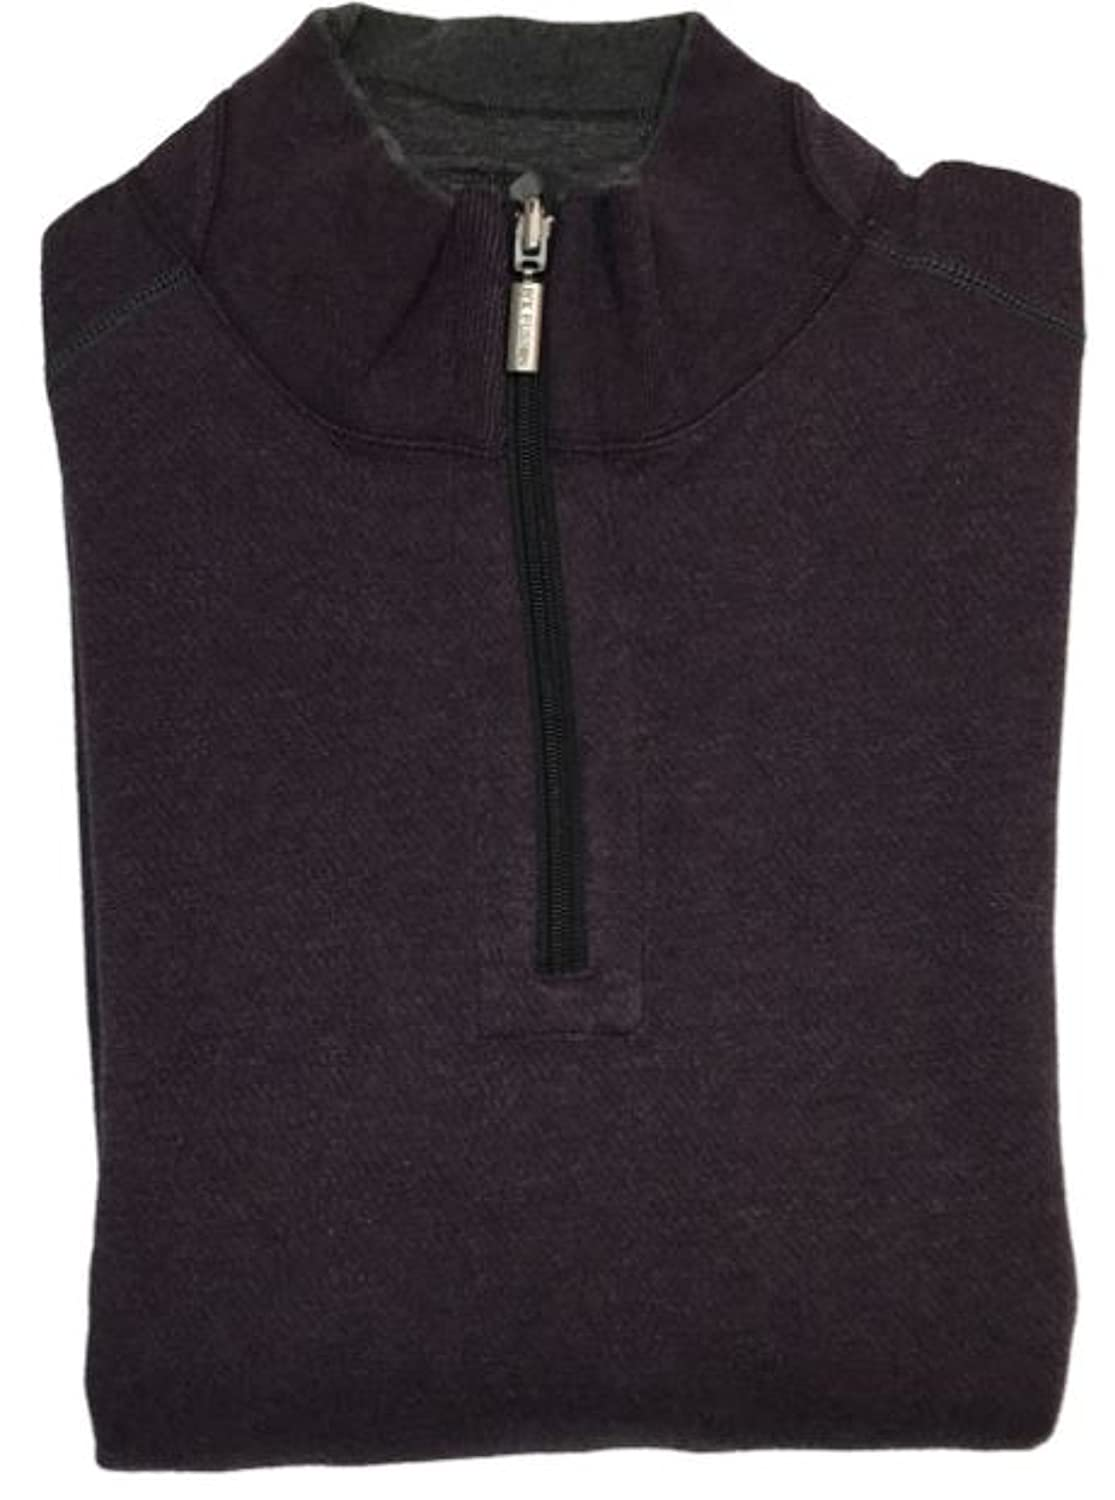 Cheap F/X Fusion FX Fusion Big & Tall 1/4 Zip Solid Reversible Sweater (Large, Concord Heather) hot sale